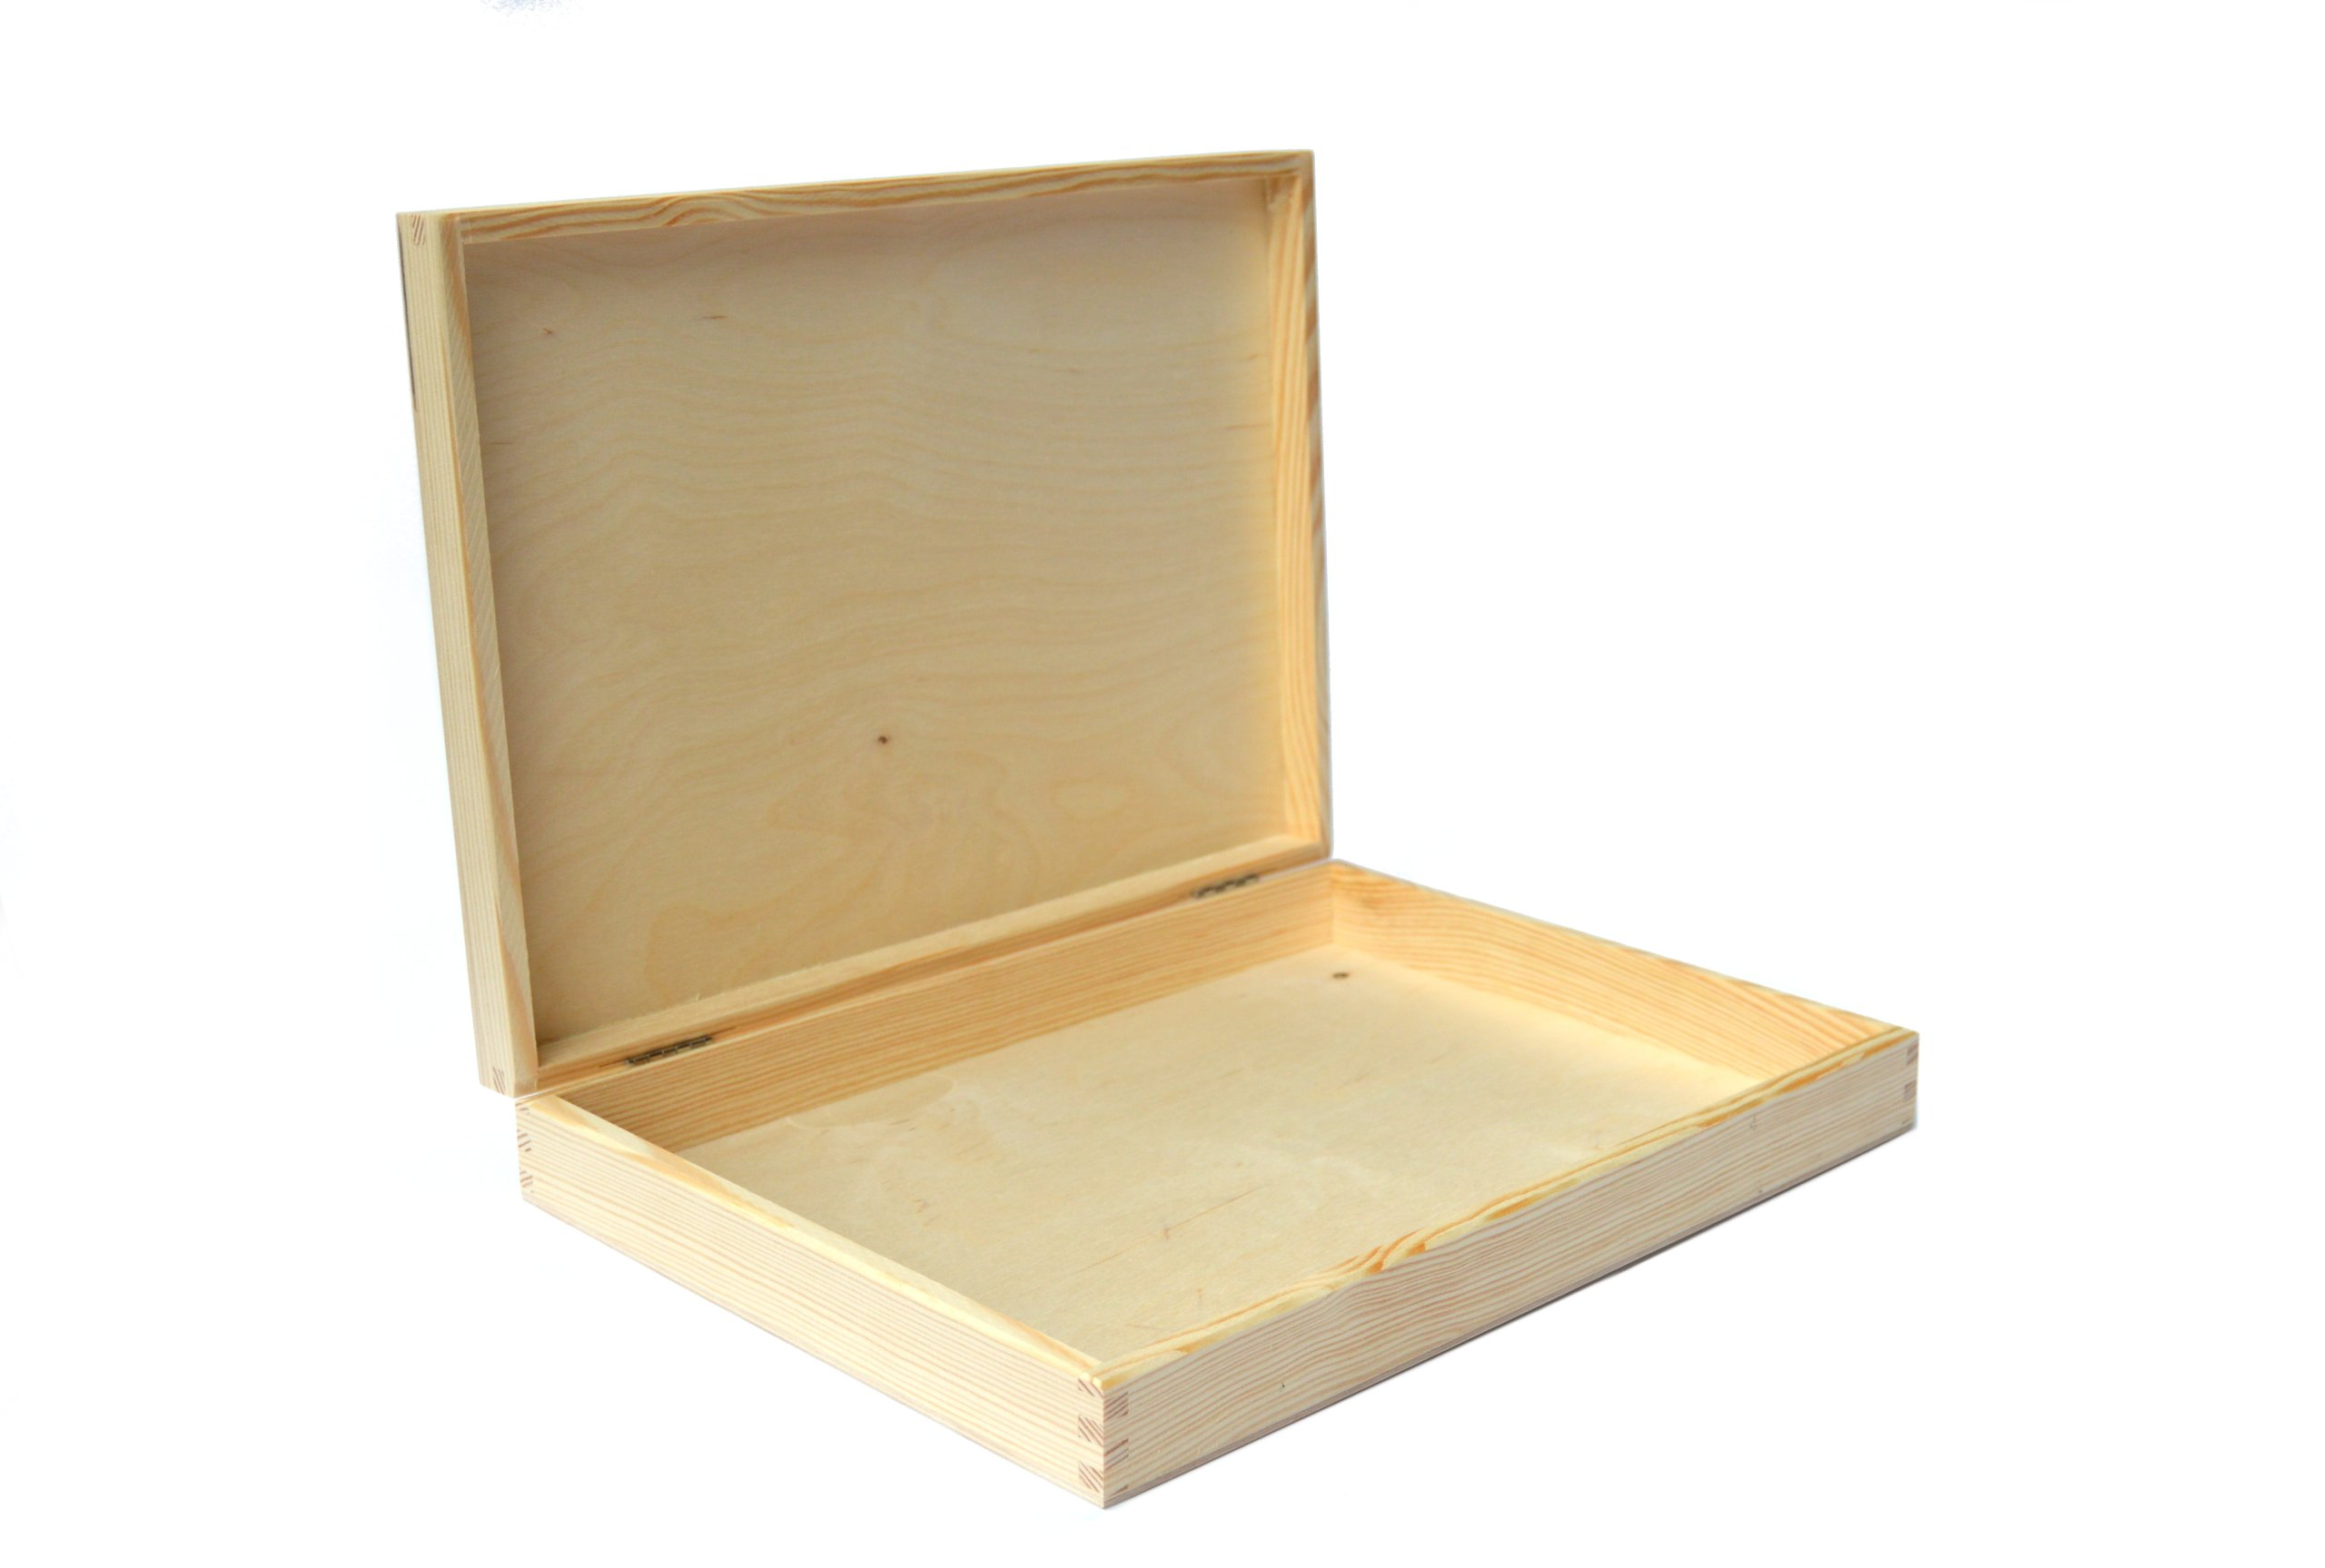 Flat A4 box for documents